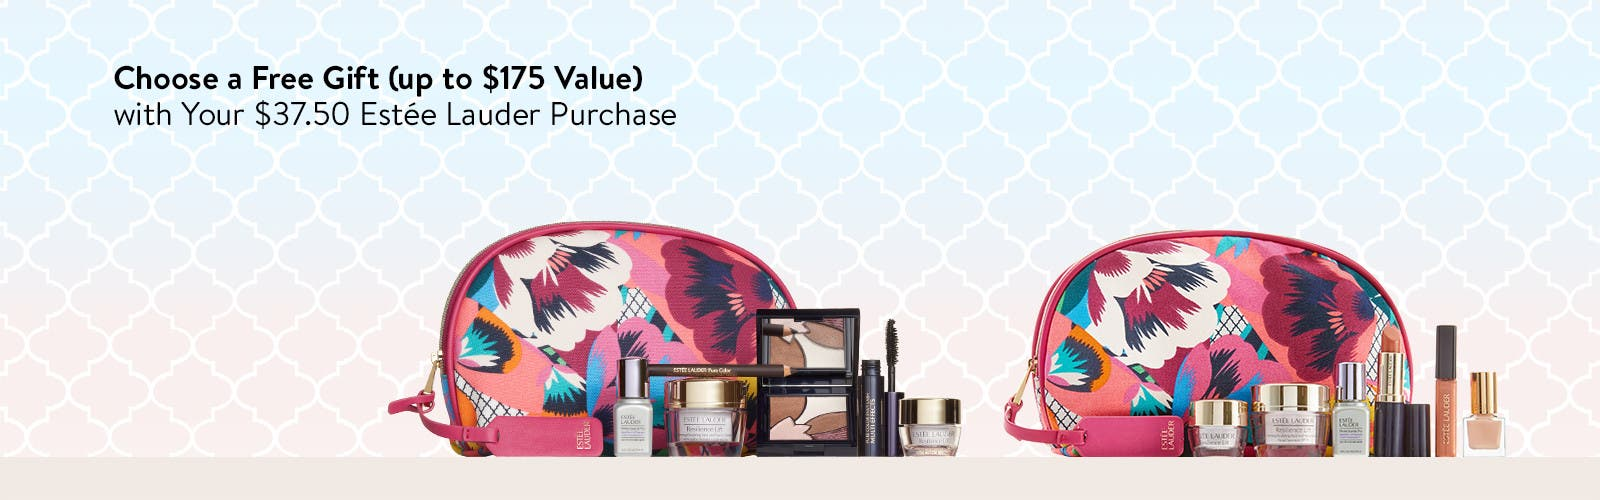 Choose your free gift with $37.50 Estée Lauder purchase. Up to $175 value.